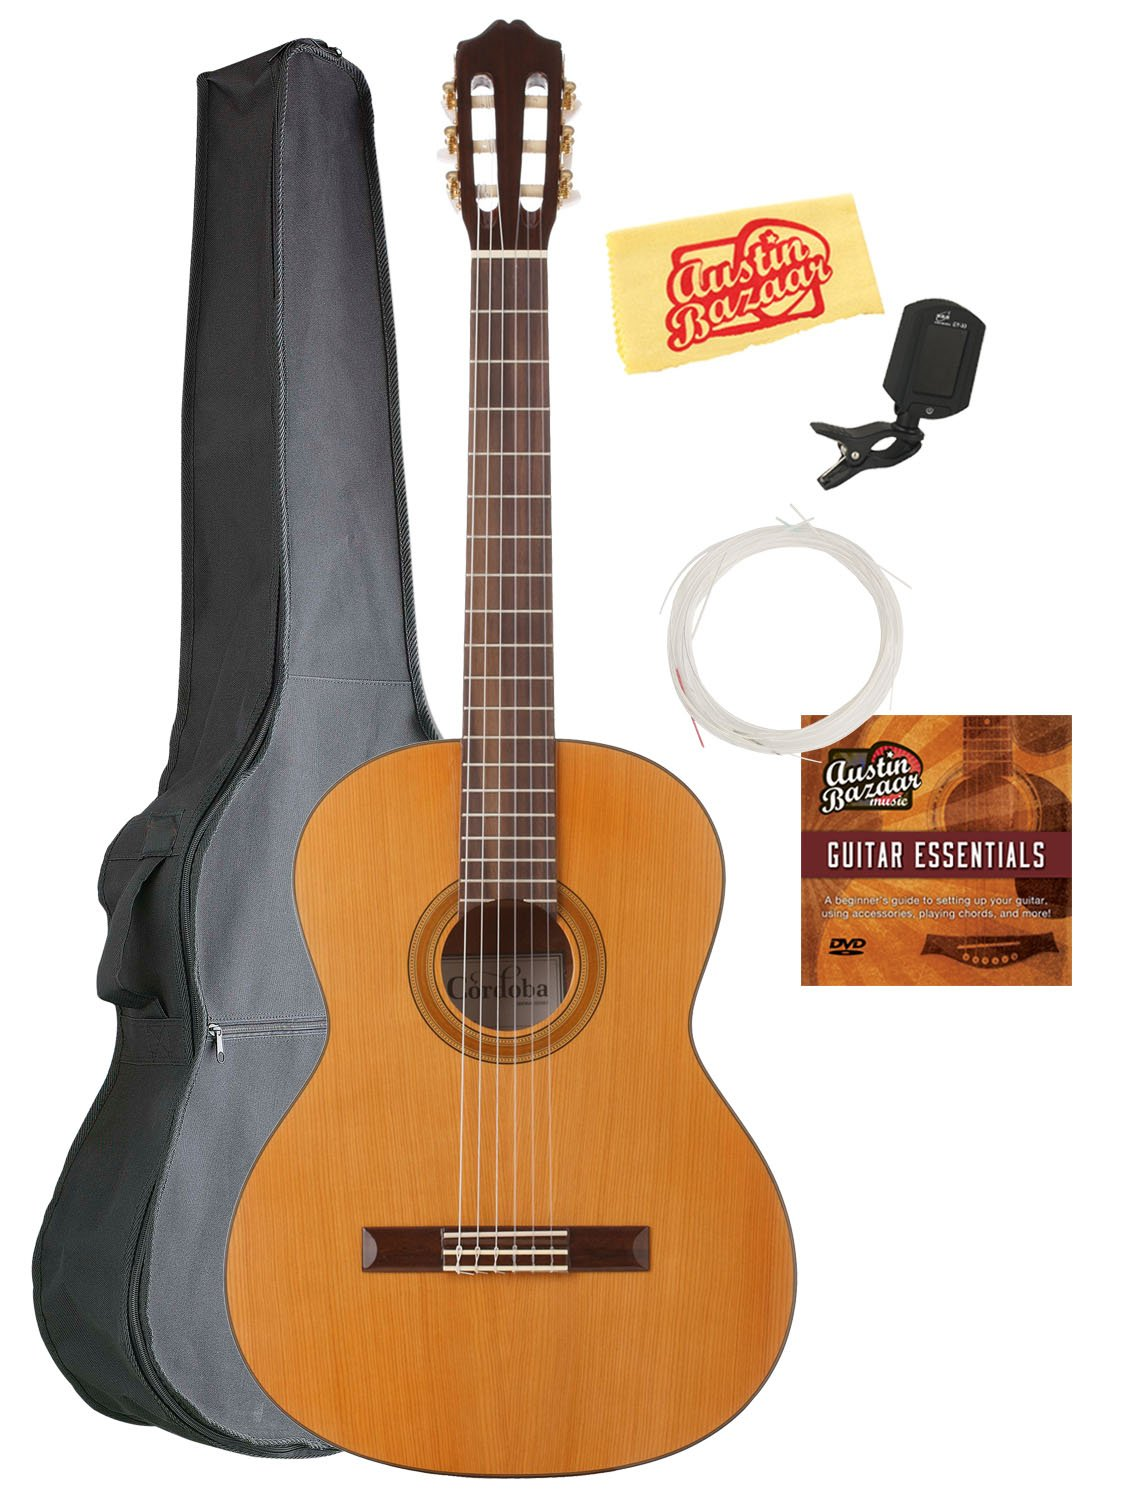 Cordoba C3M Classical Guitar Bundle with Gig Bag, Tuner, Austin Bazaar Instructional DVD, and Polishing Cloth